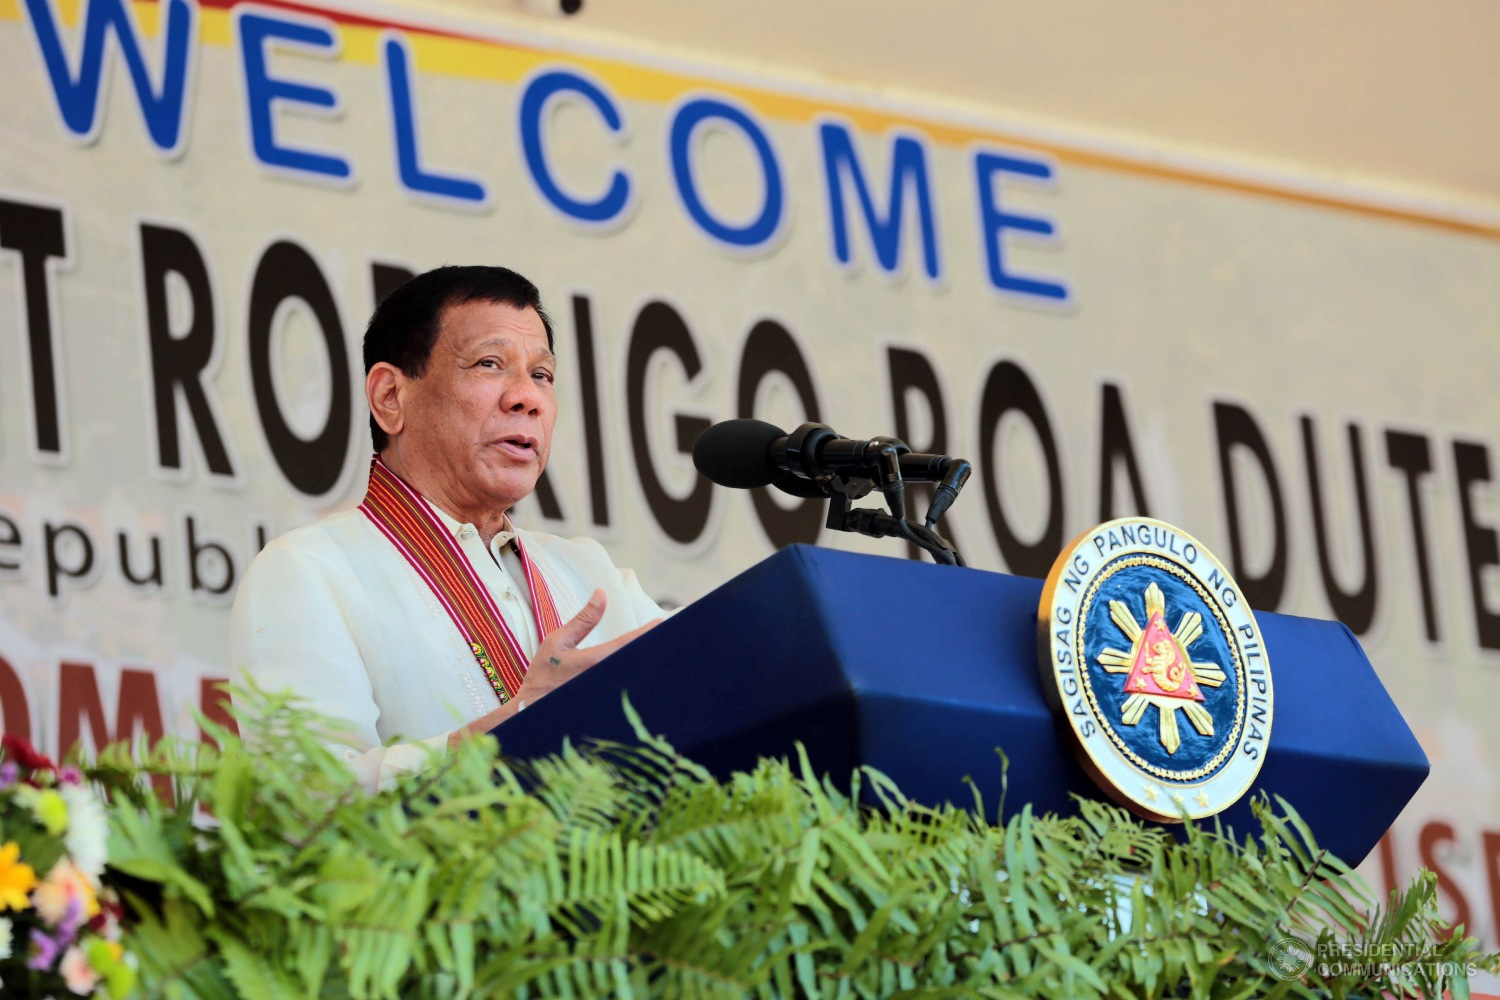 Philippine President Rodrigo Duterte is set to return to China next month upon invitation of Chinese President Xi Jinping to attend the Belt and Road Forum for International Cooperation. (Photo: ROBINSON NIÑAL JR./Presidential Photo)